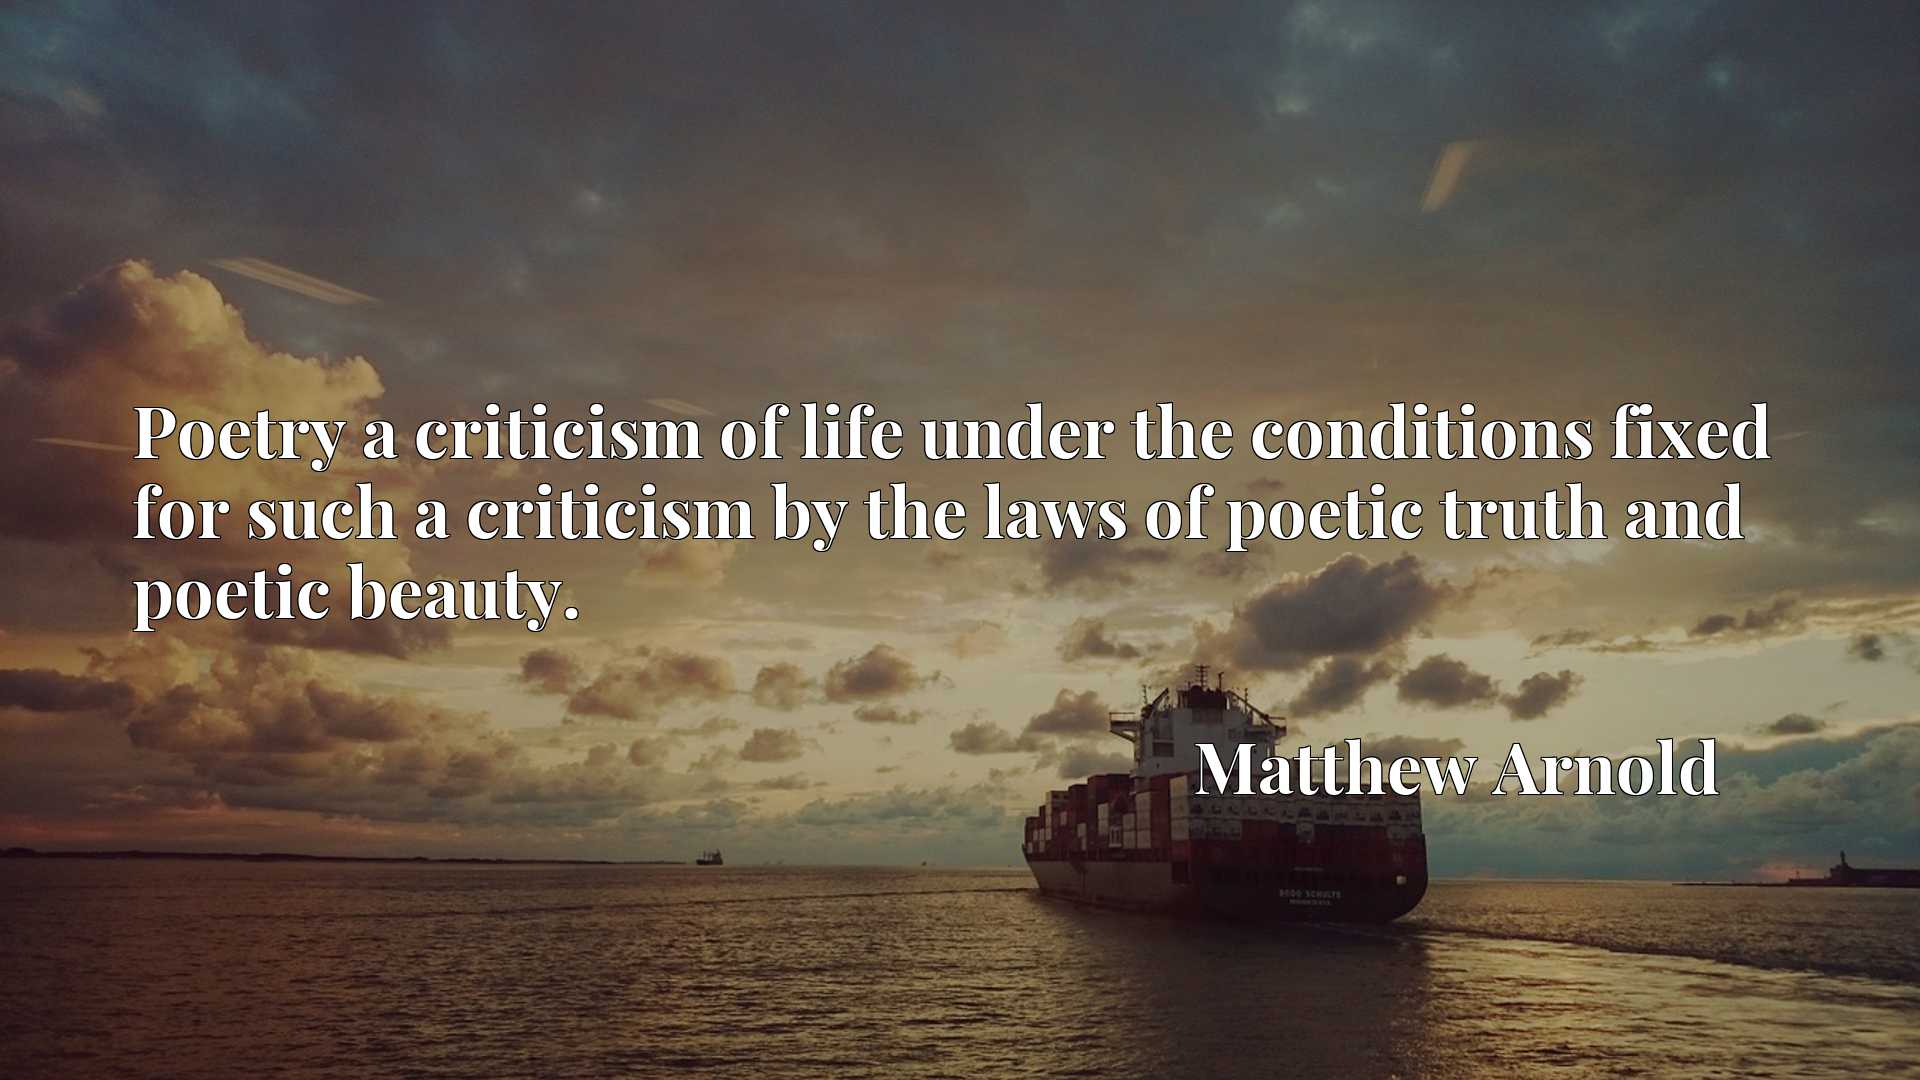 Poetry a criticism of life under the conditions fixed for such a criticism by the laws of poetic truth and poetic beauty.